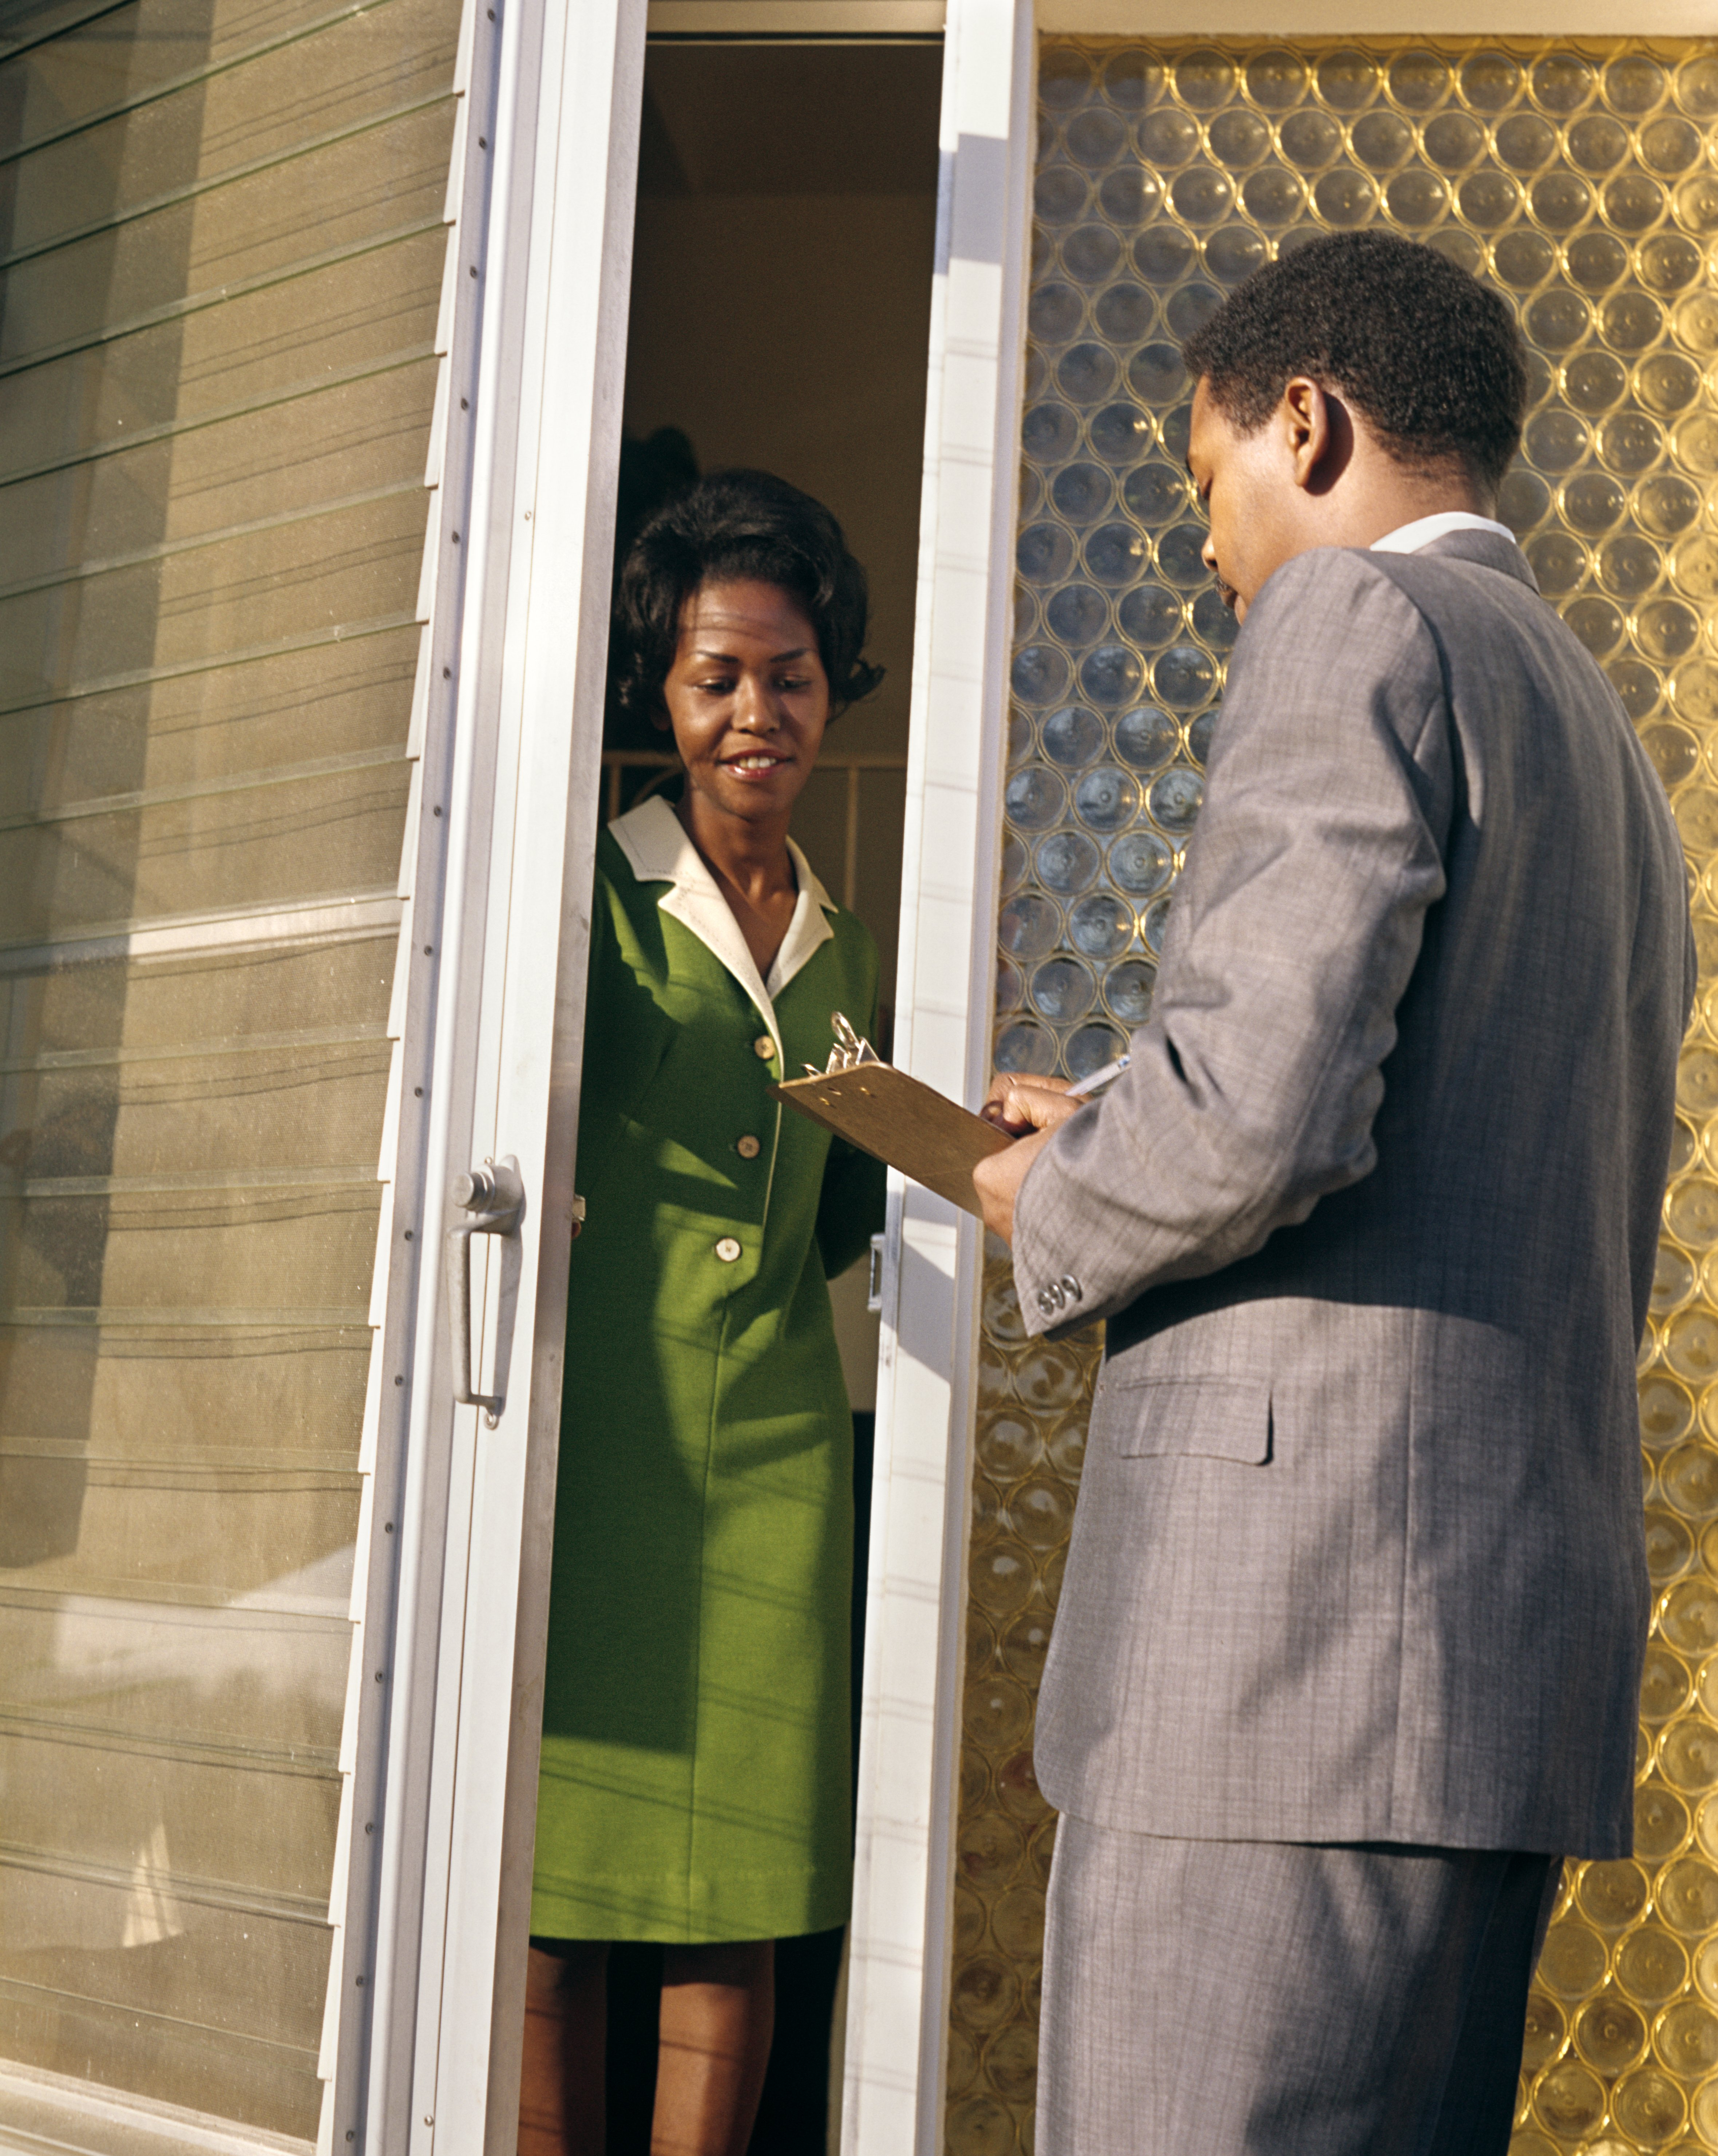 1960s 1970s AFRICAN AMERICAN SALESMAN MAN HOLD CLIPBOARD TALK TO WOMAN FRONT DOOR | PHOTO: GETTY IMAGES